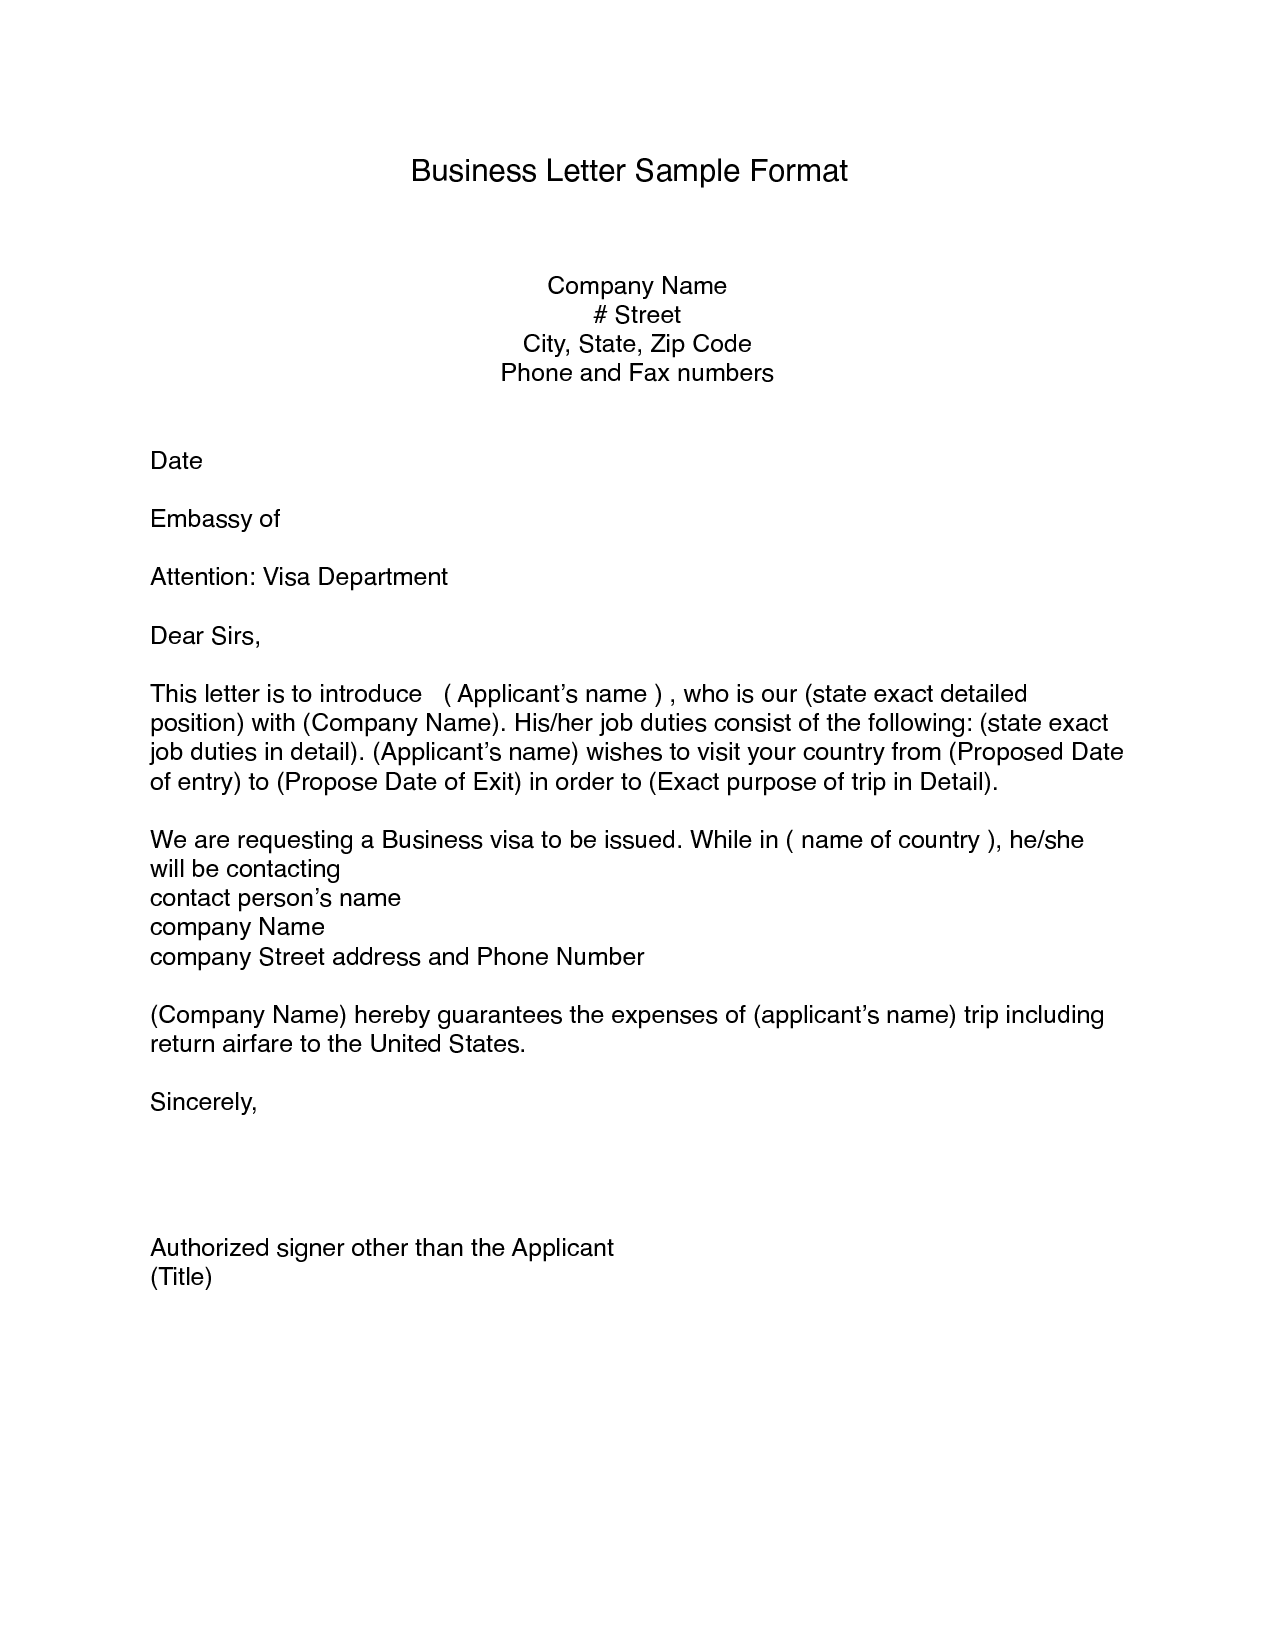 Download the Business Letter Template from Vertex42.| Places